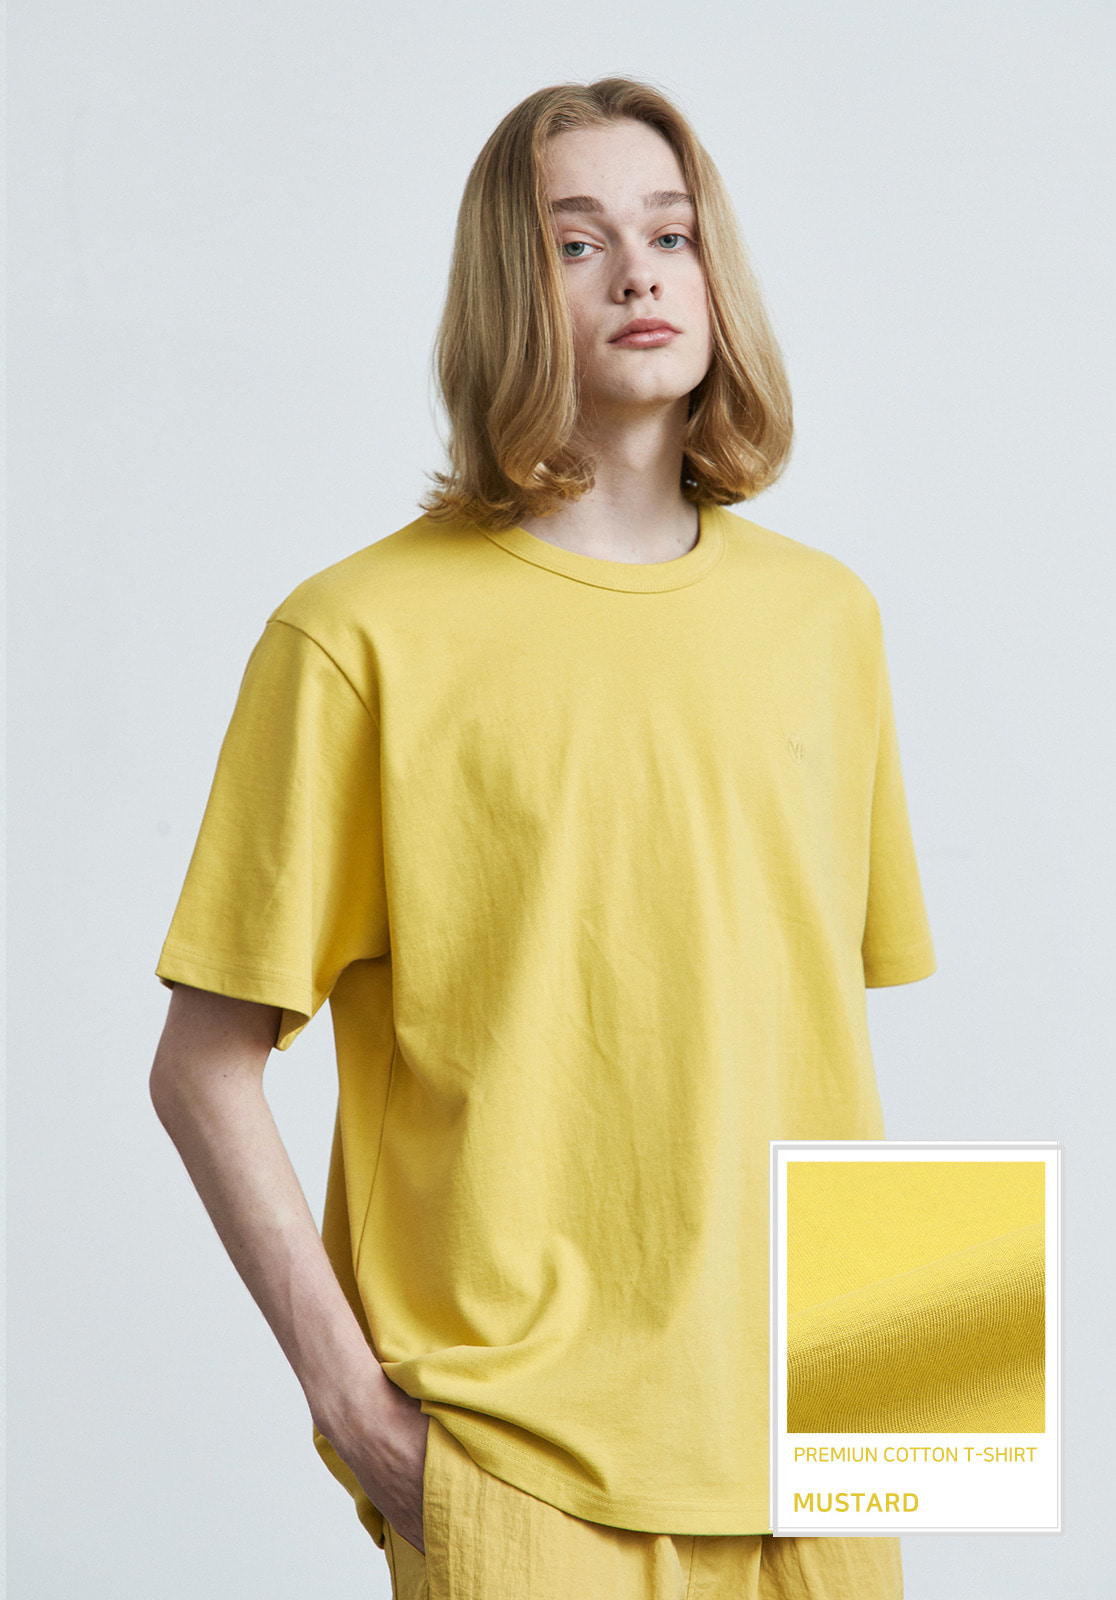 V017 PRIMIUM COTTON T-SHIRTS  MUSTARD